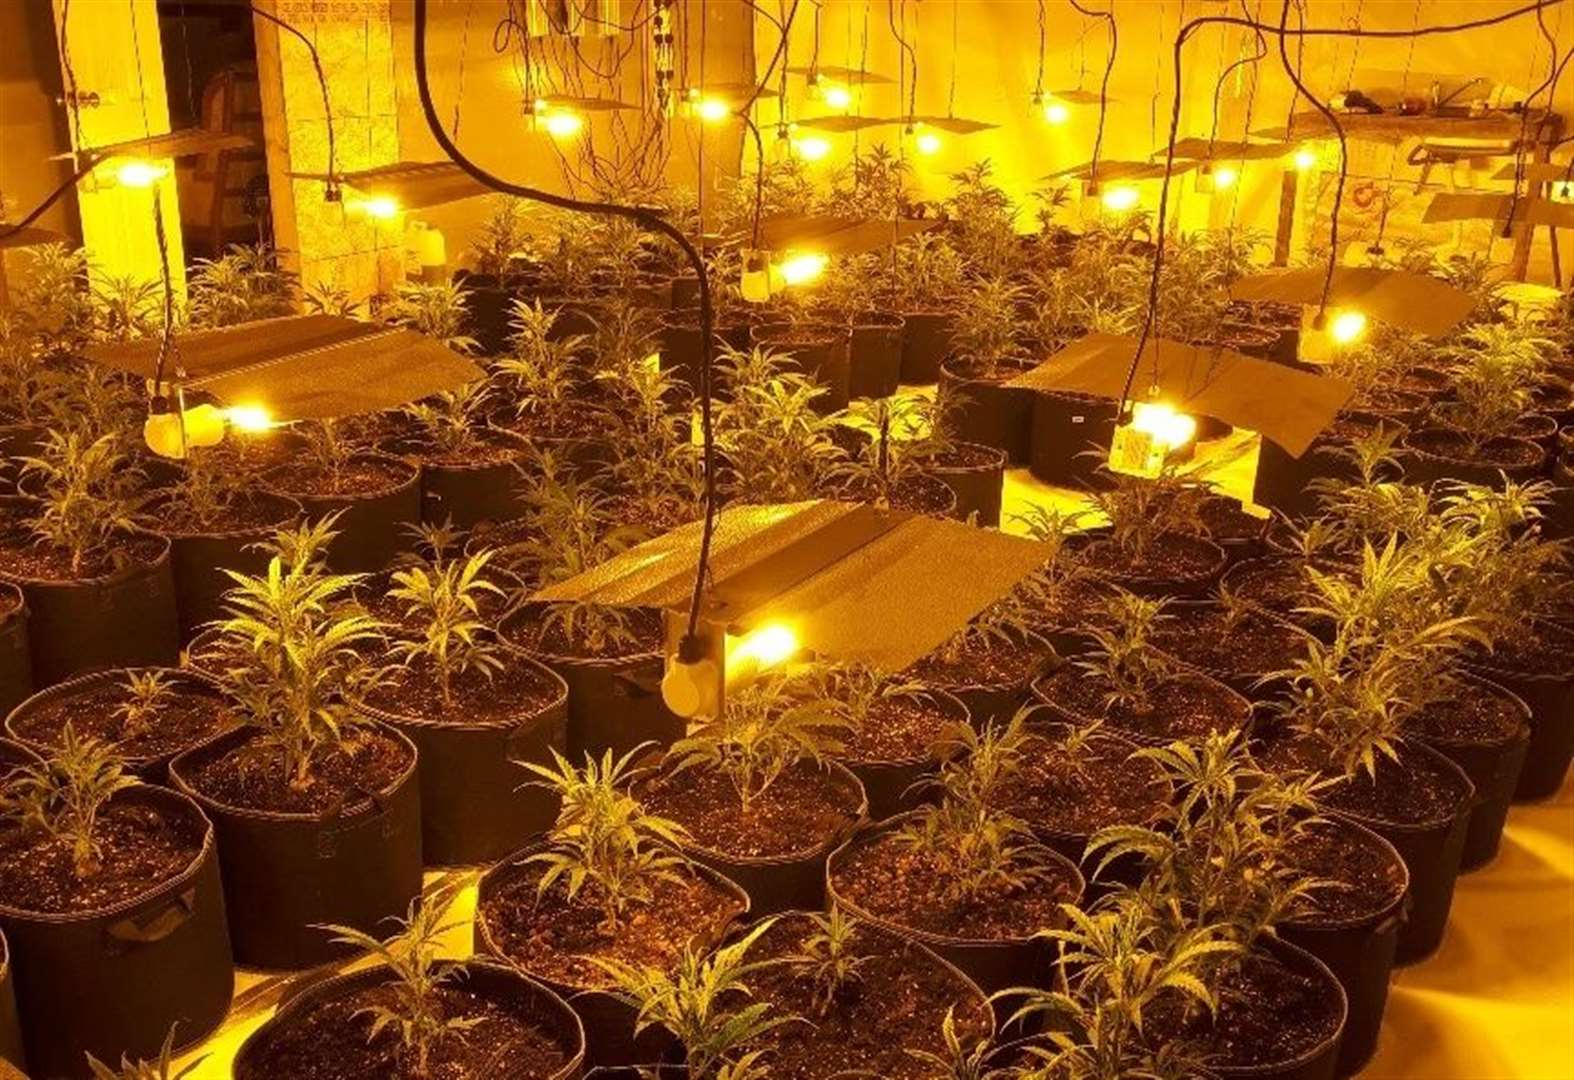 Police seize £600,000 of cannabis after raids on drug farms in Sudbury area